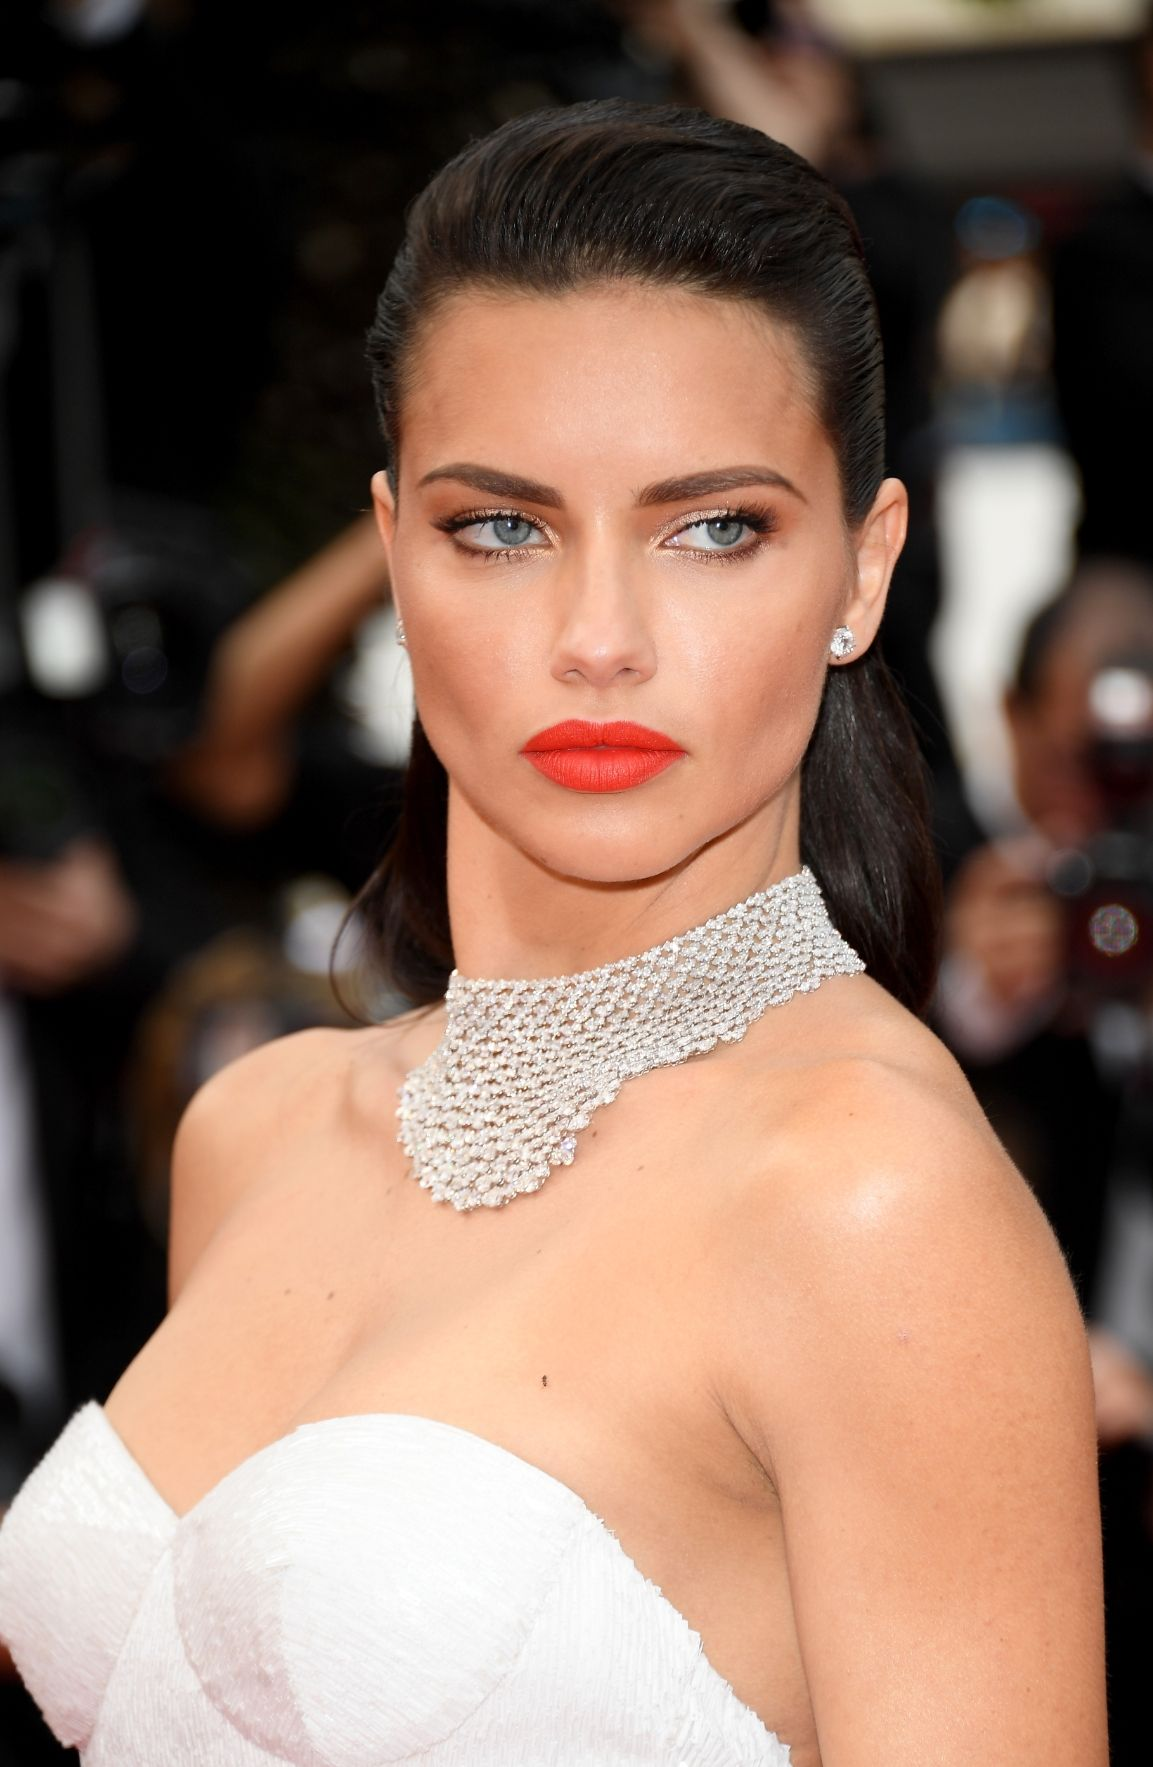 Adriana Lima slicked back hairstyles 2017 Cannes